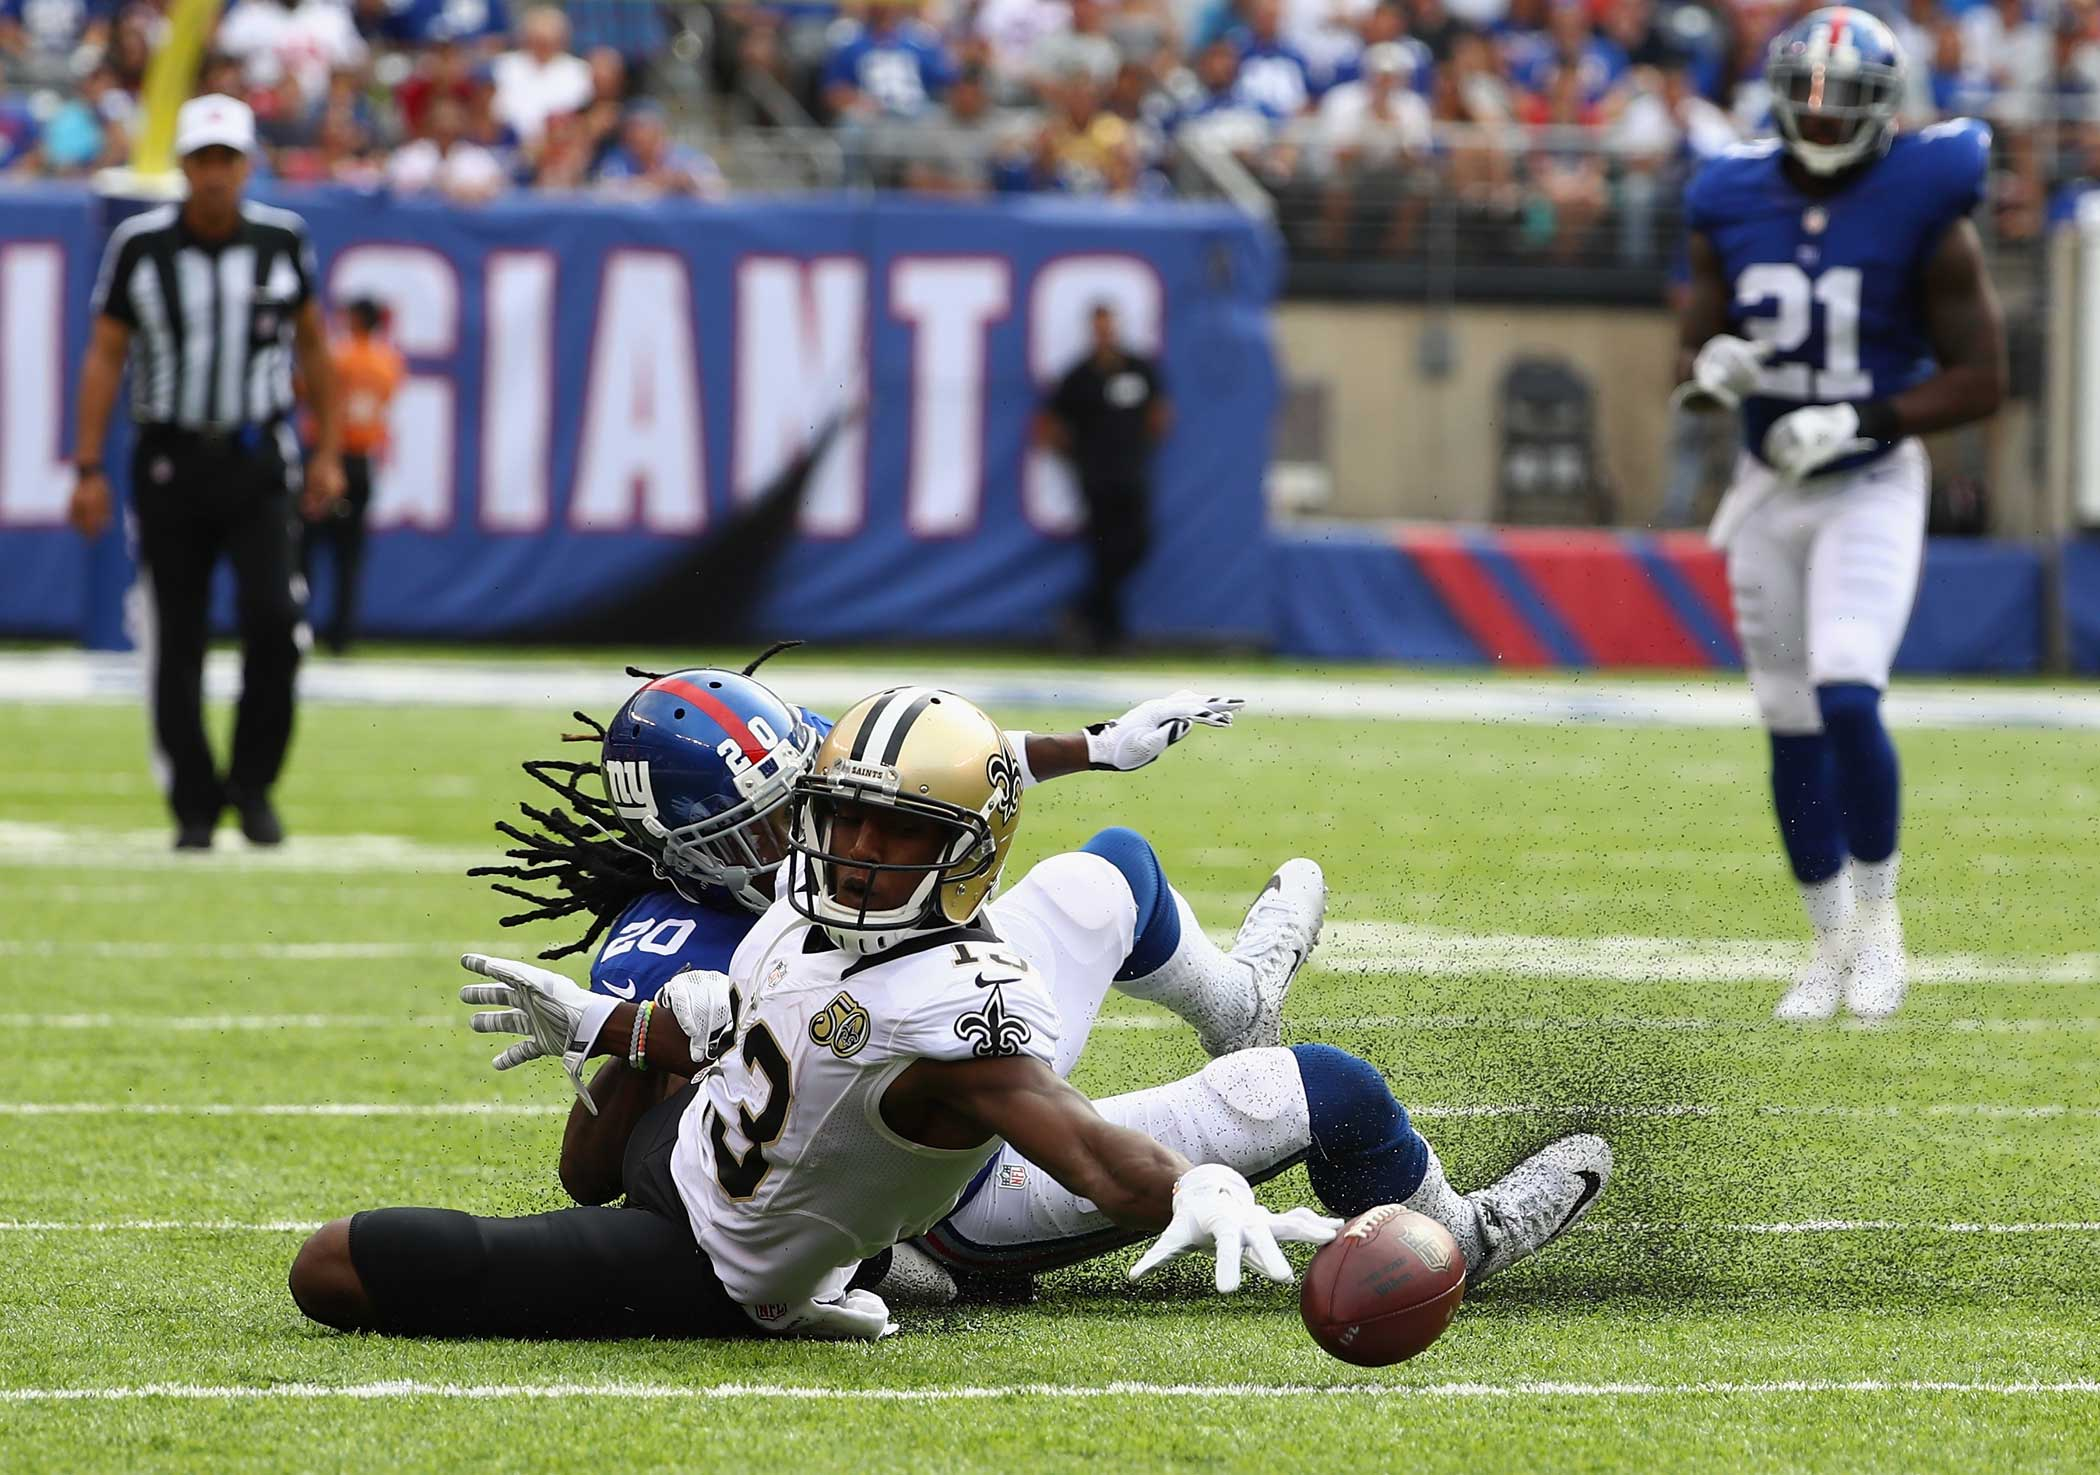 Michael Thomas of the New Orleans Saints reaches for the ball against Janoris Jenkins of the New York Giants during the second half at MetLife Stadium on Sept. 18, 2016 in East Rutherford, New Jersey.